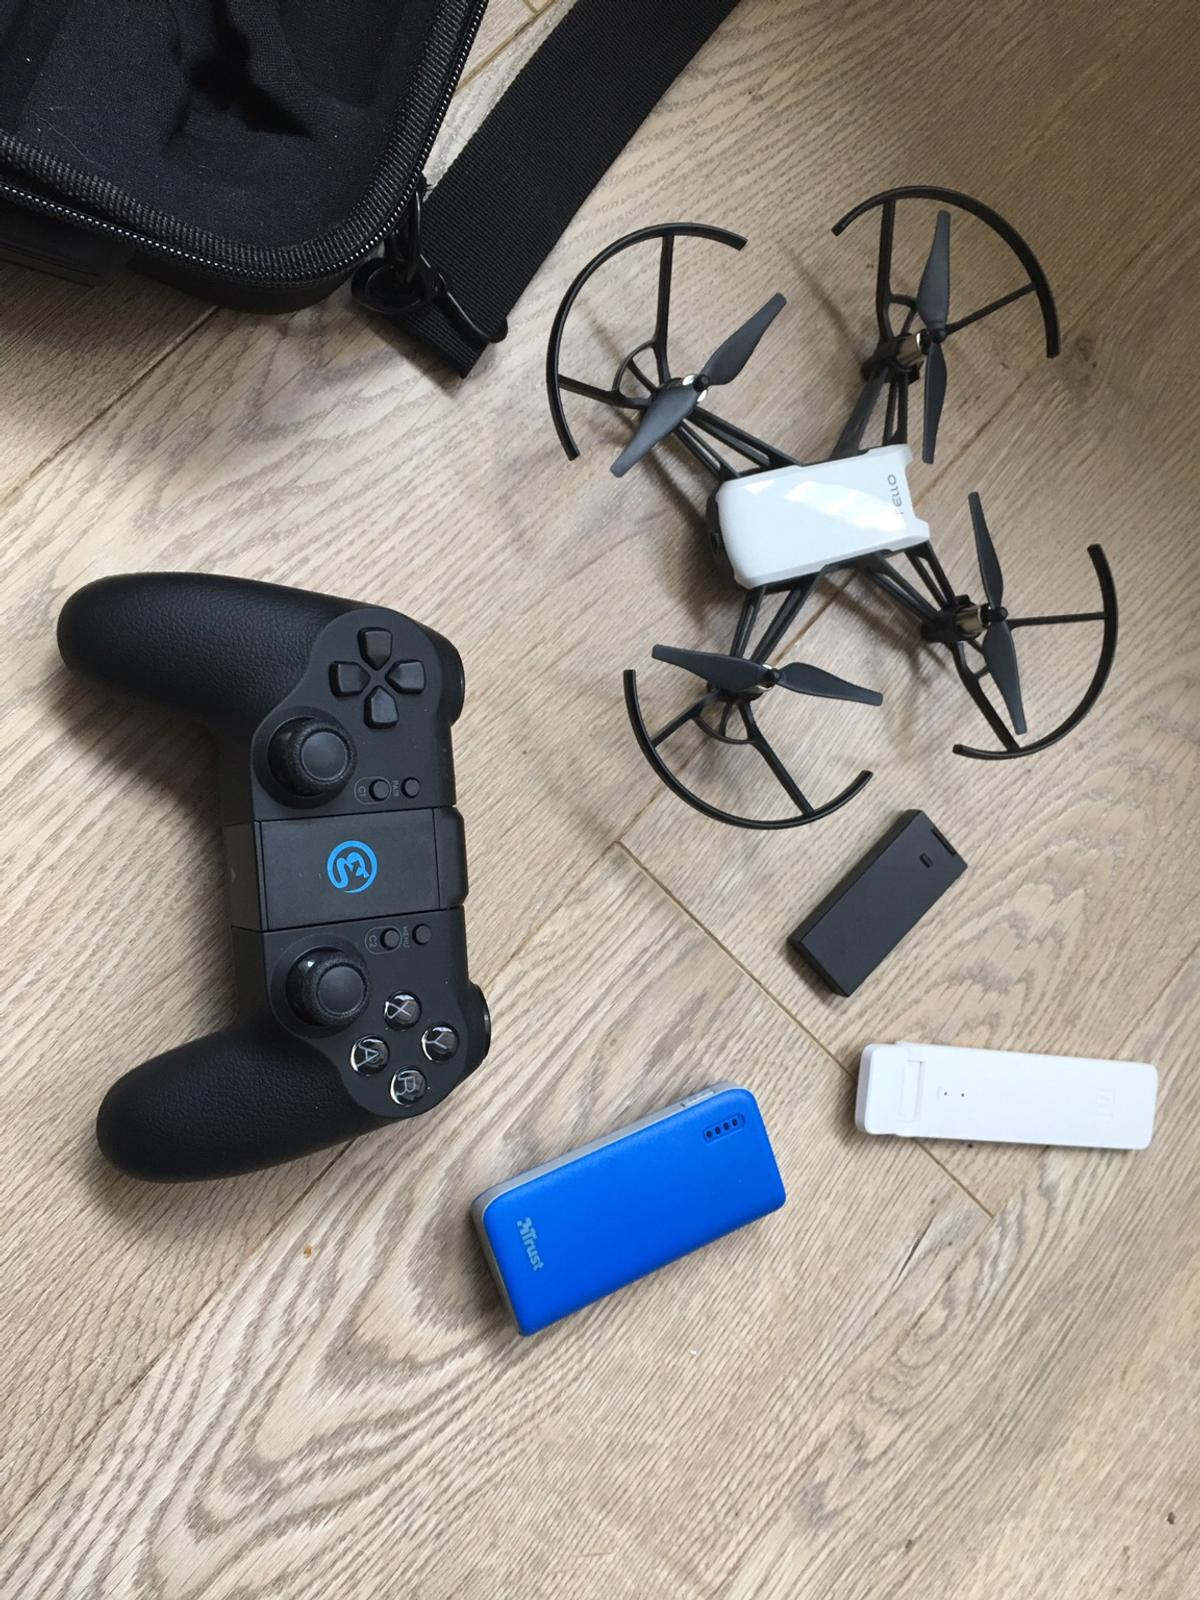 DJI Tello drone in SK7 Stockport for £100 00 for sale - Shpock